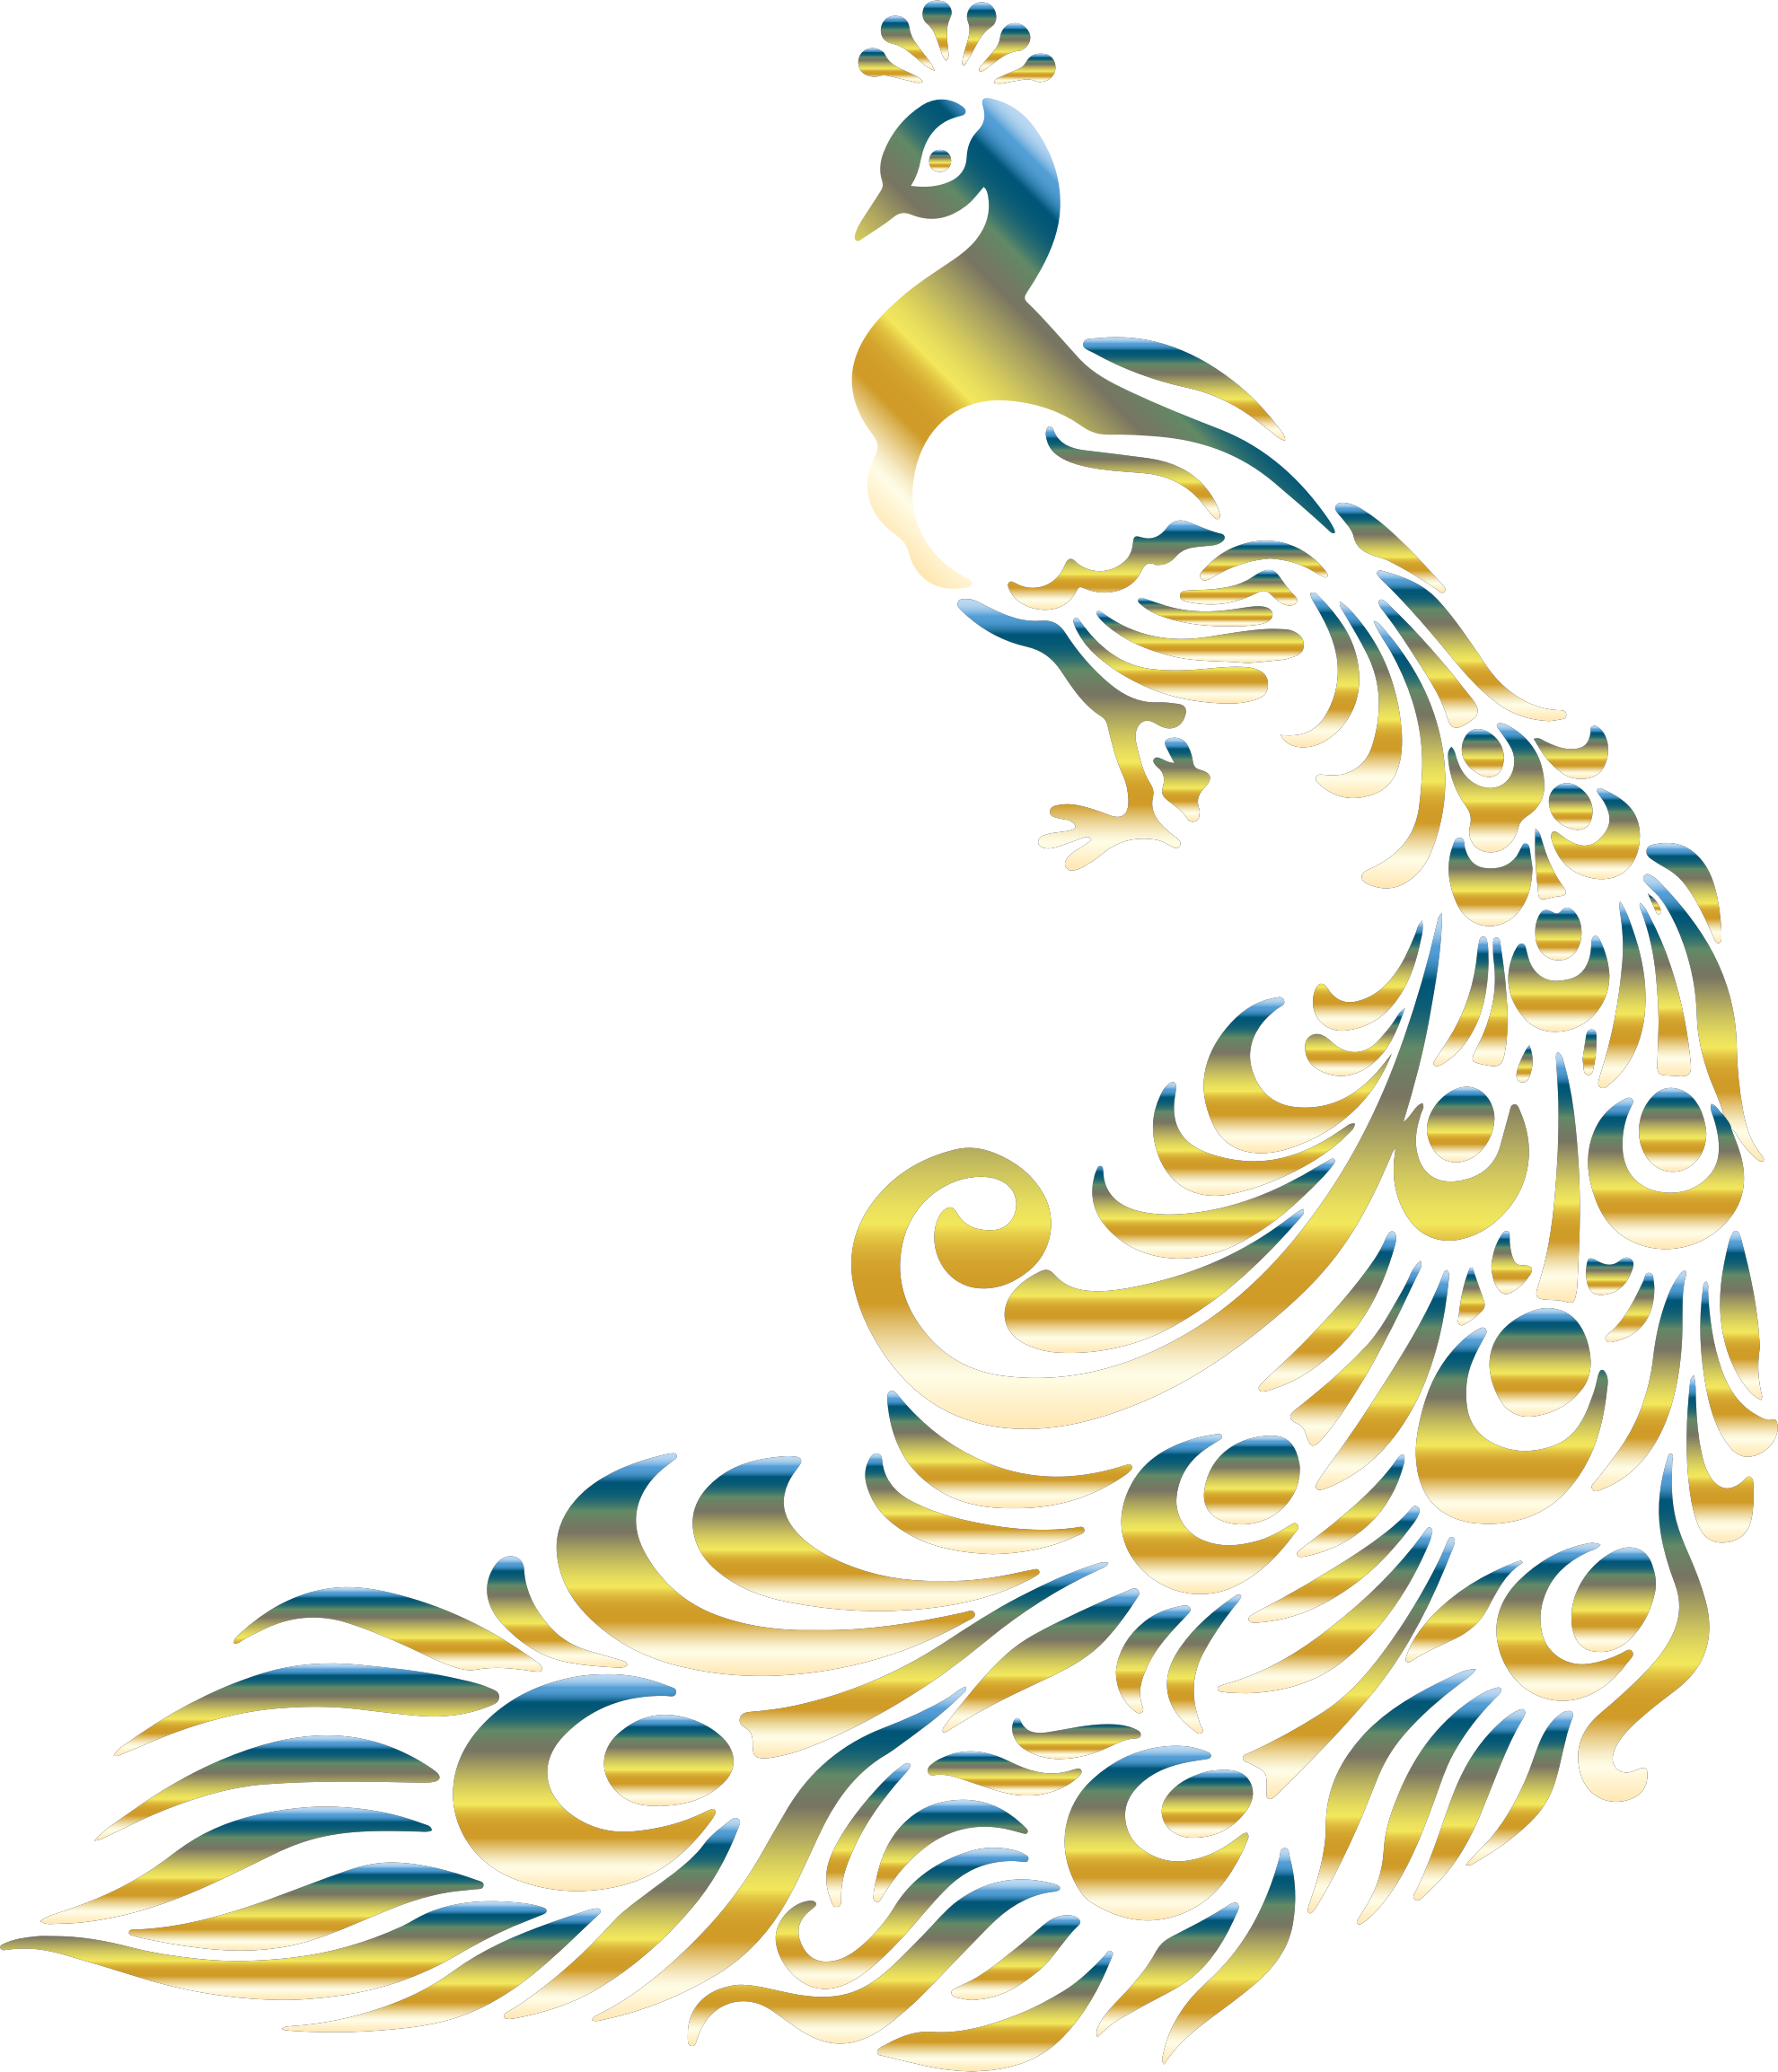 Chromatic no background icons. Clipart wedding peacock